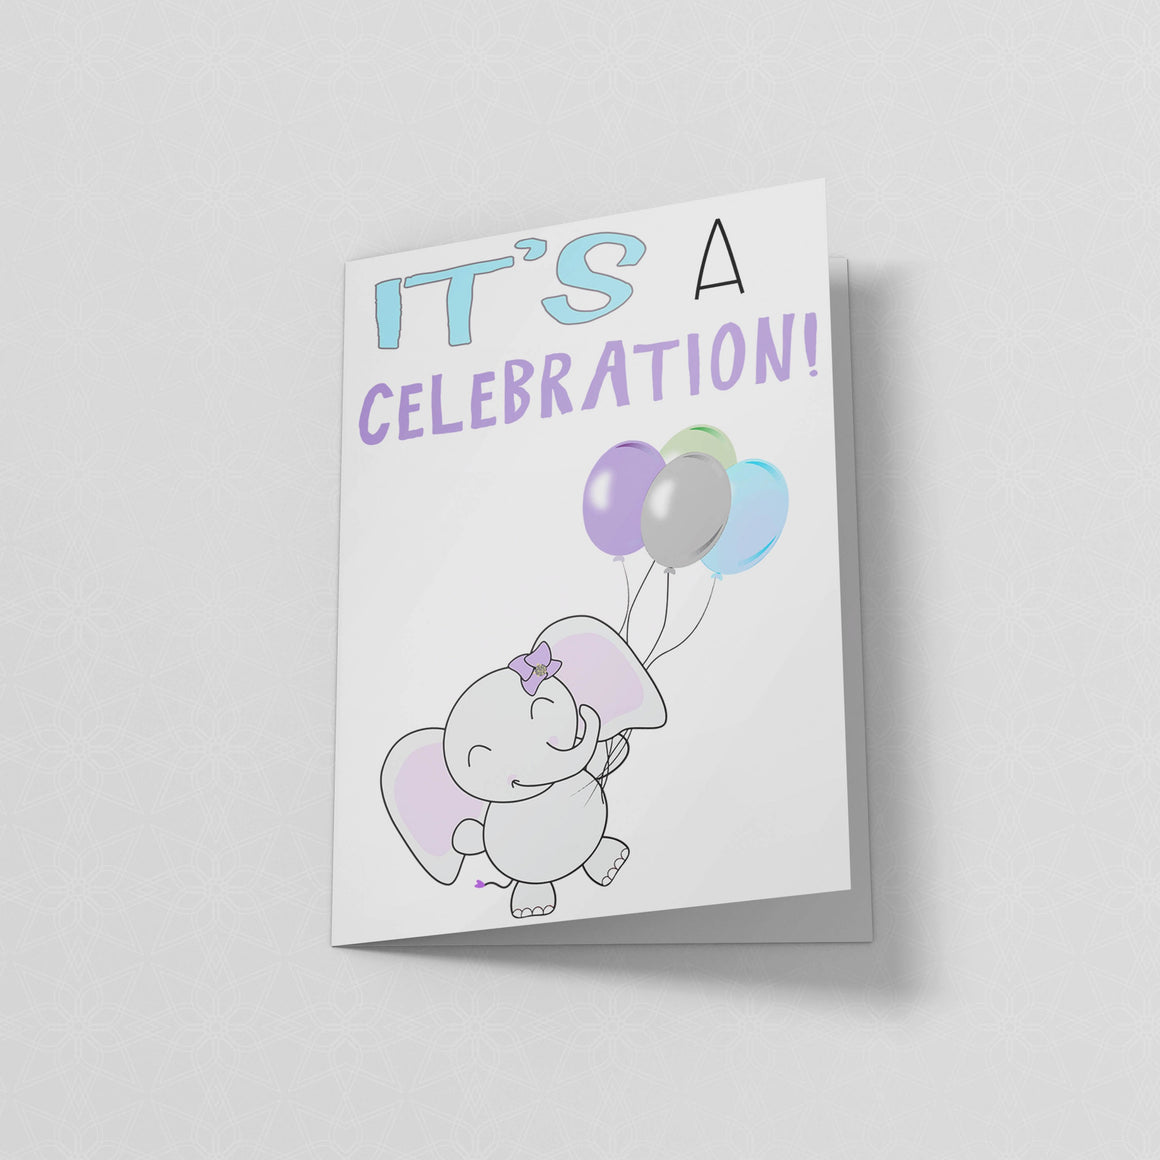 It's a Celebration - Greeting Card